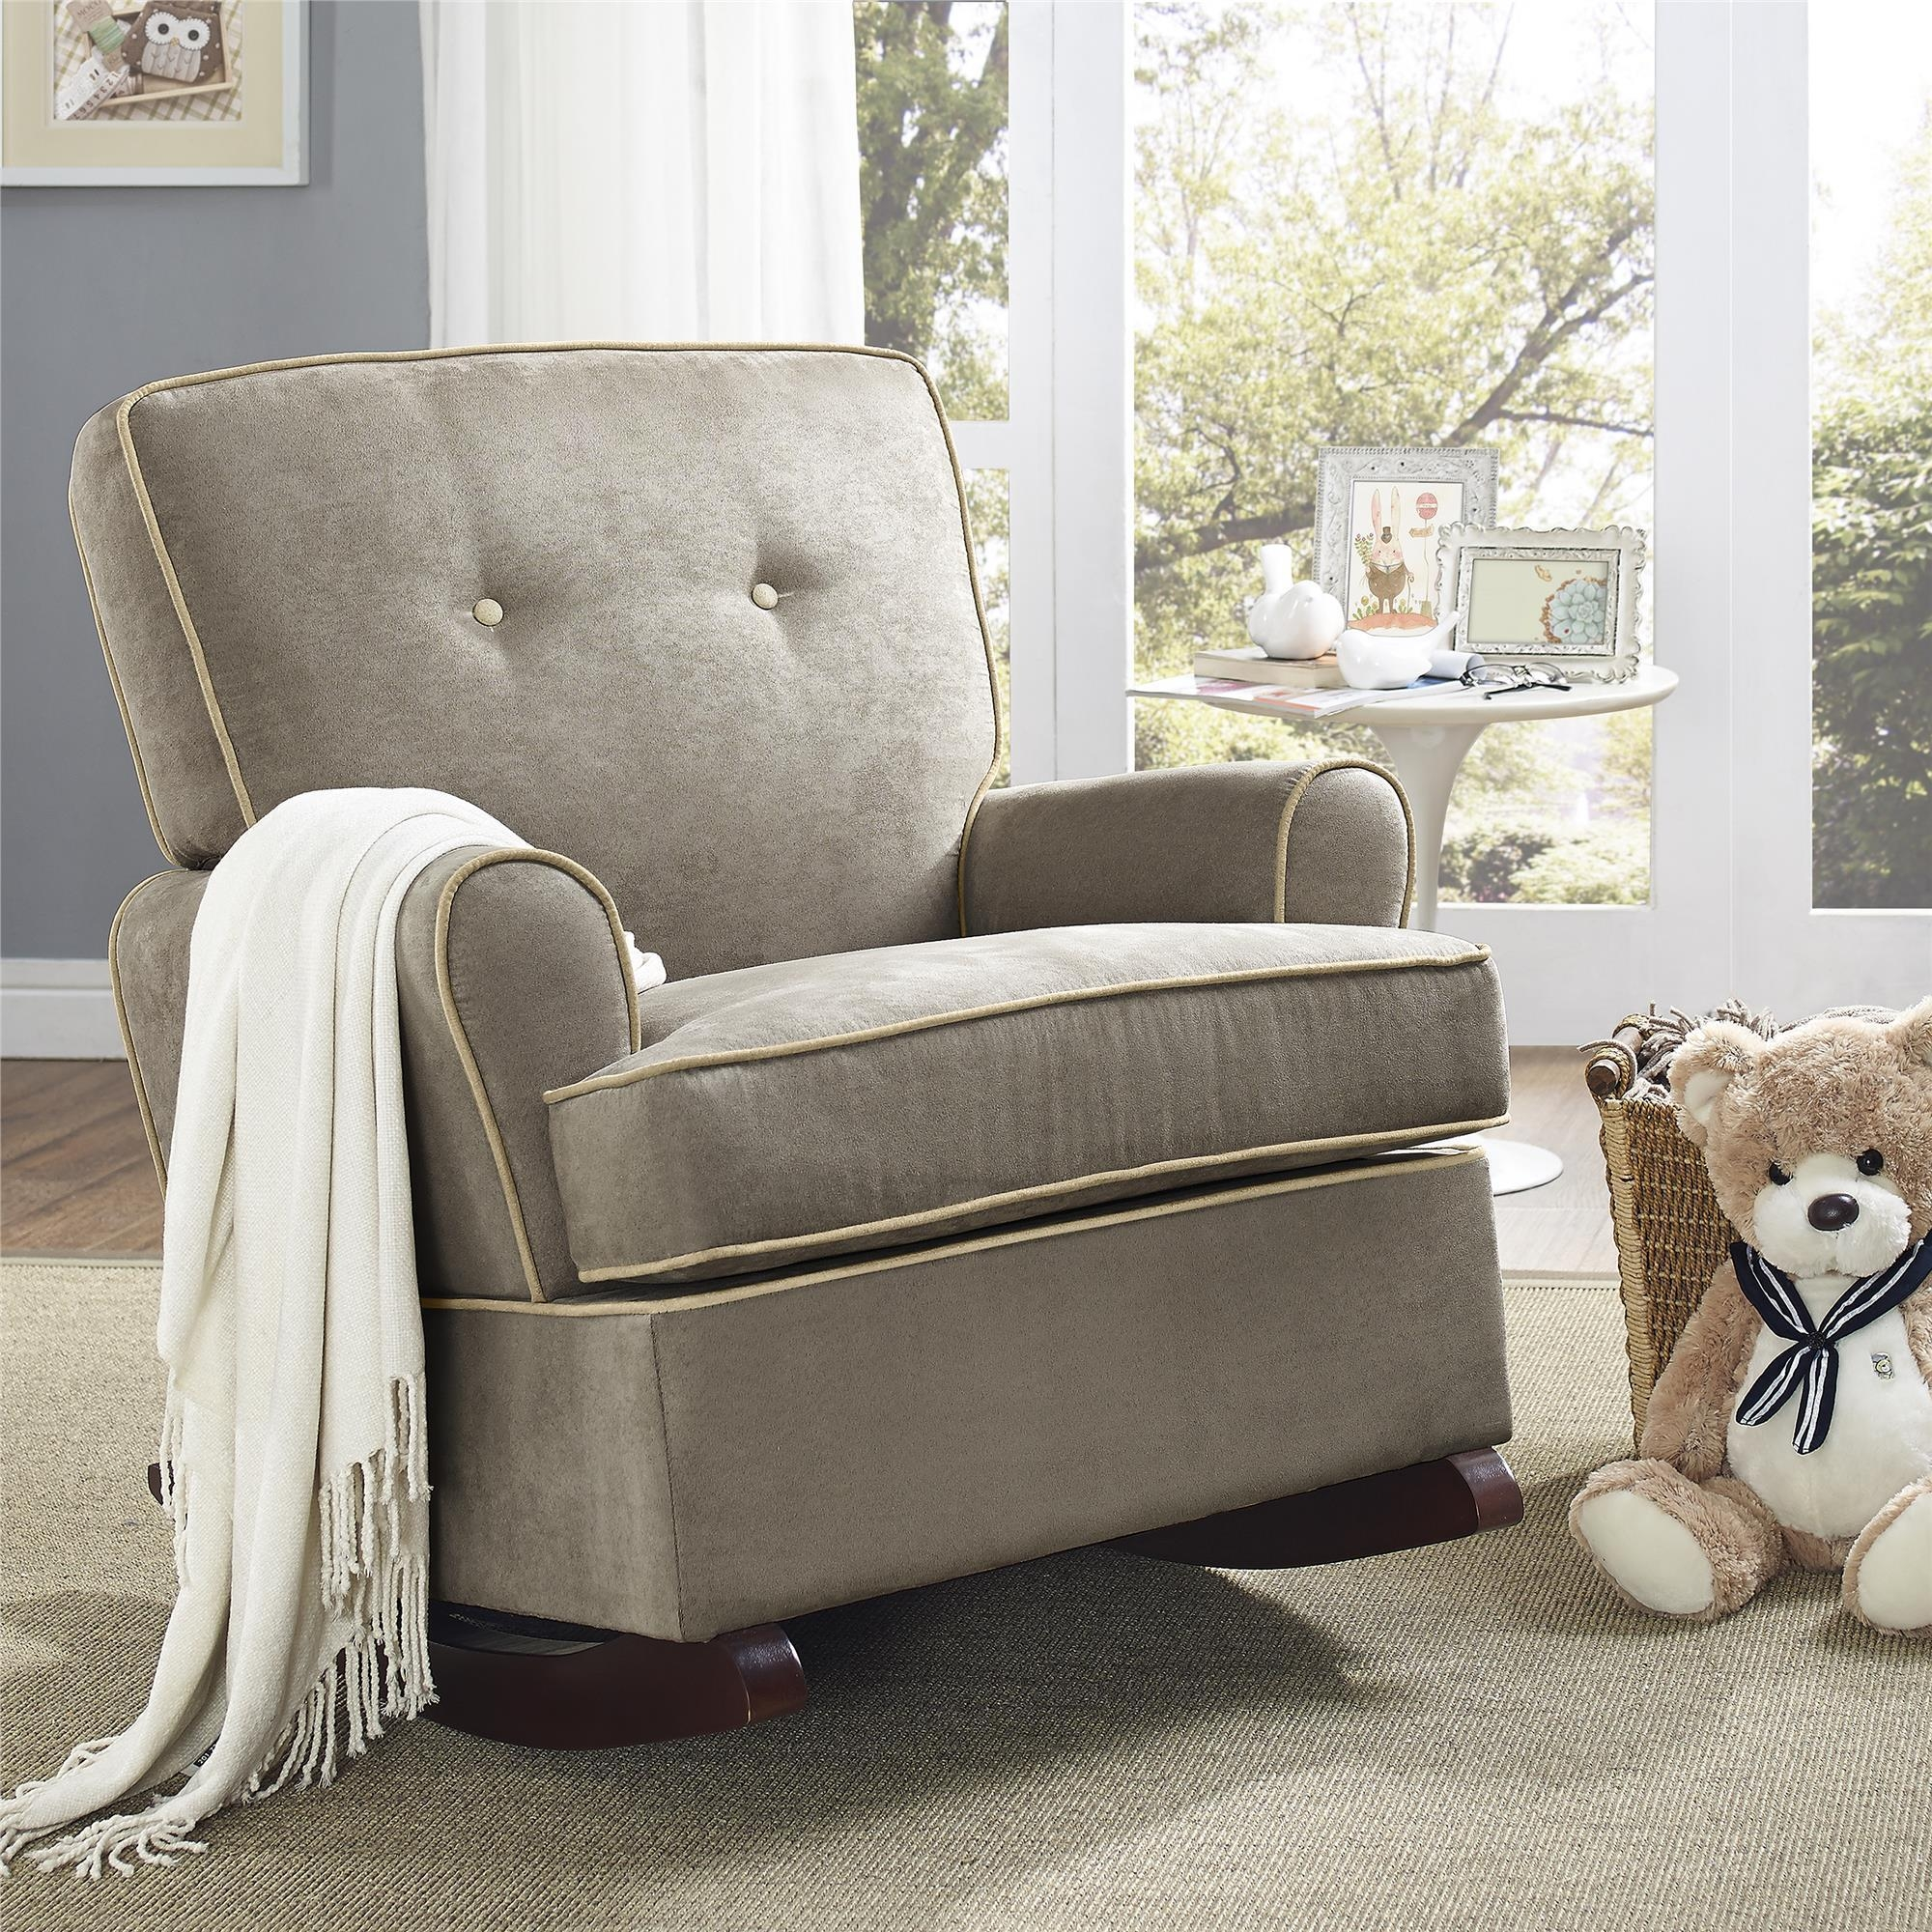 Comfy fabric upholstered glider rocker with armchairs and wooden laminate floor for living room